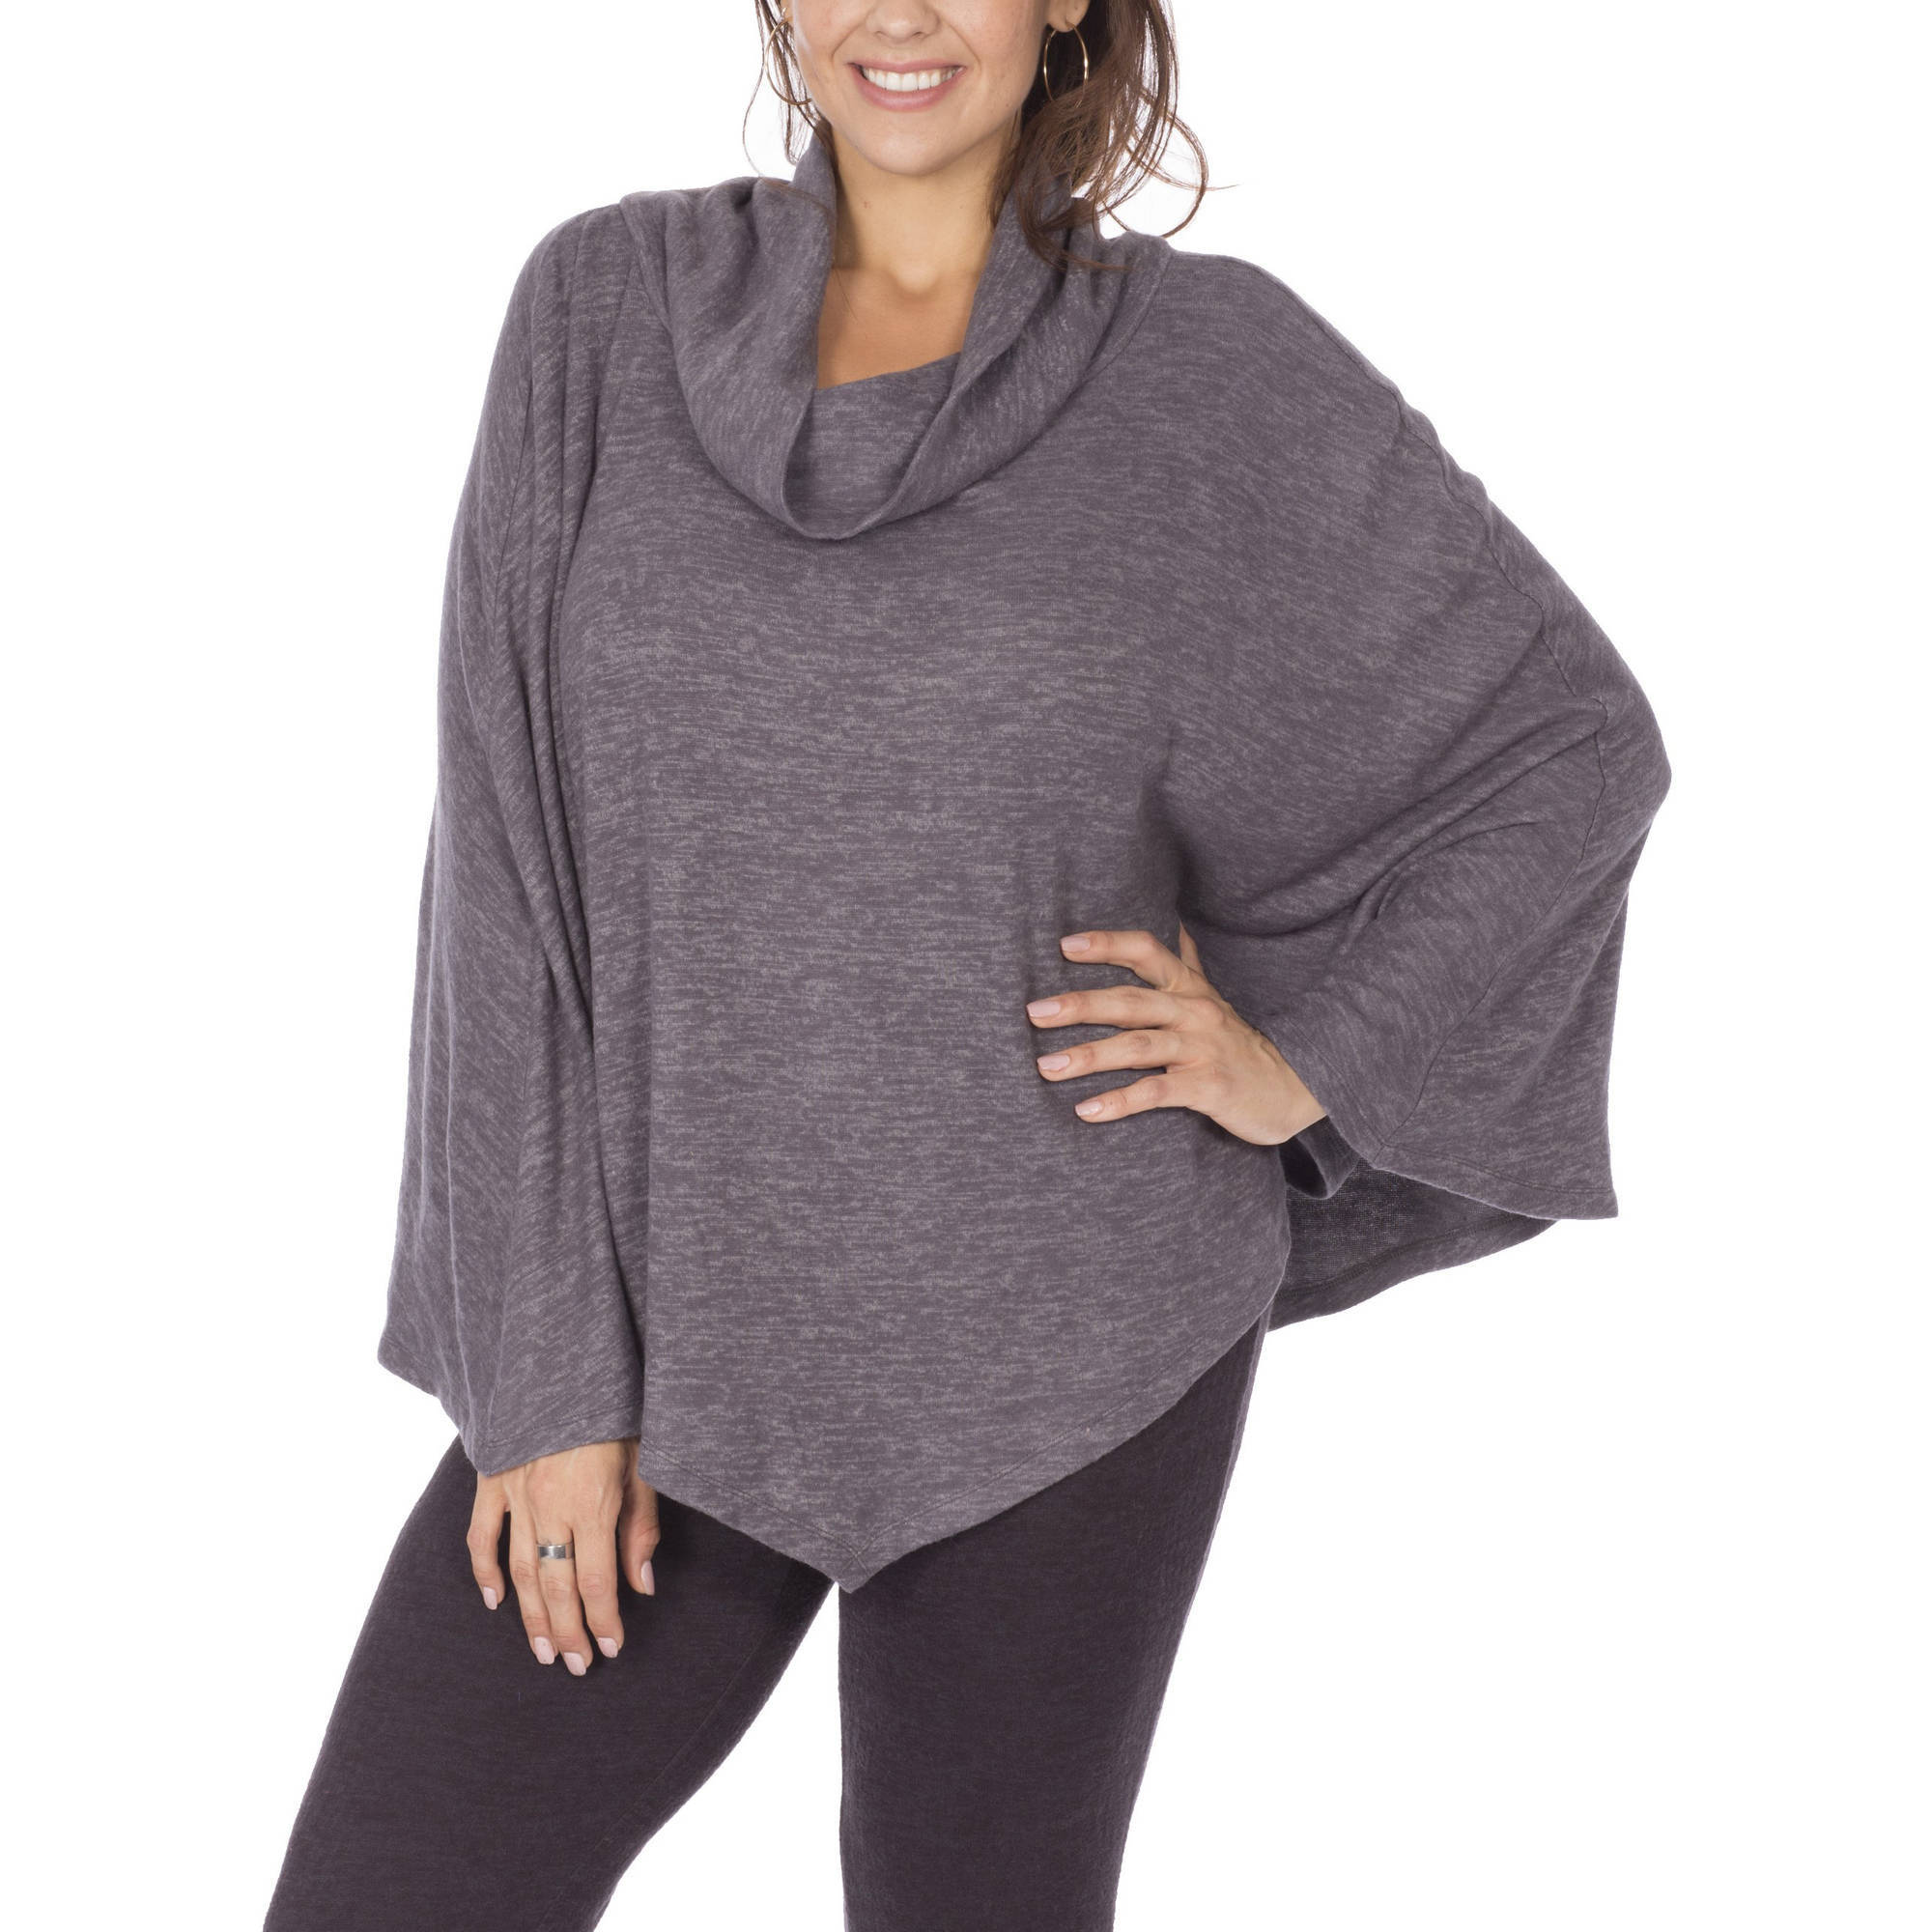 Moda Women's Next Generation Textured Cowlneck Poncho by